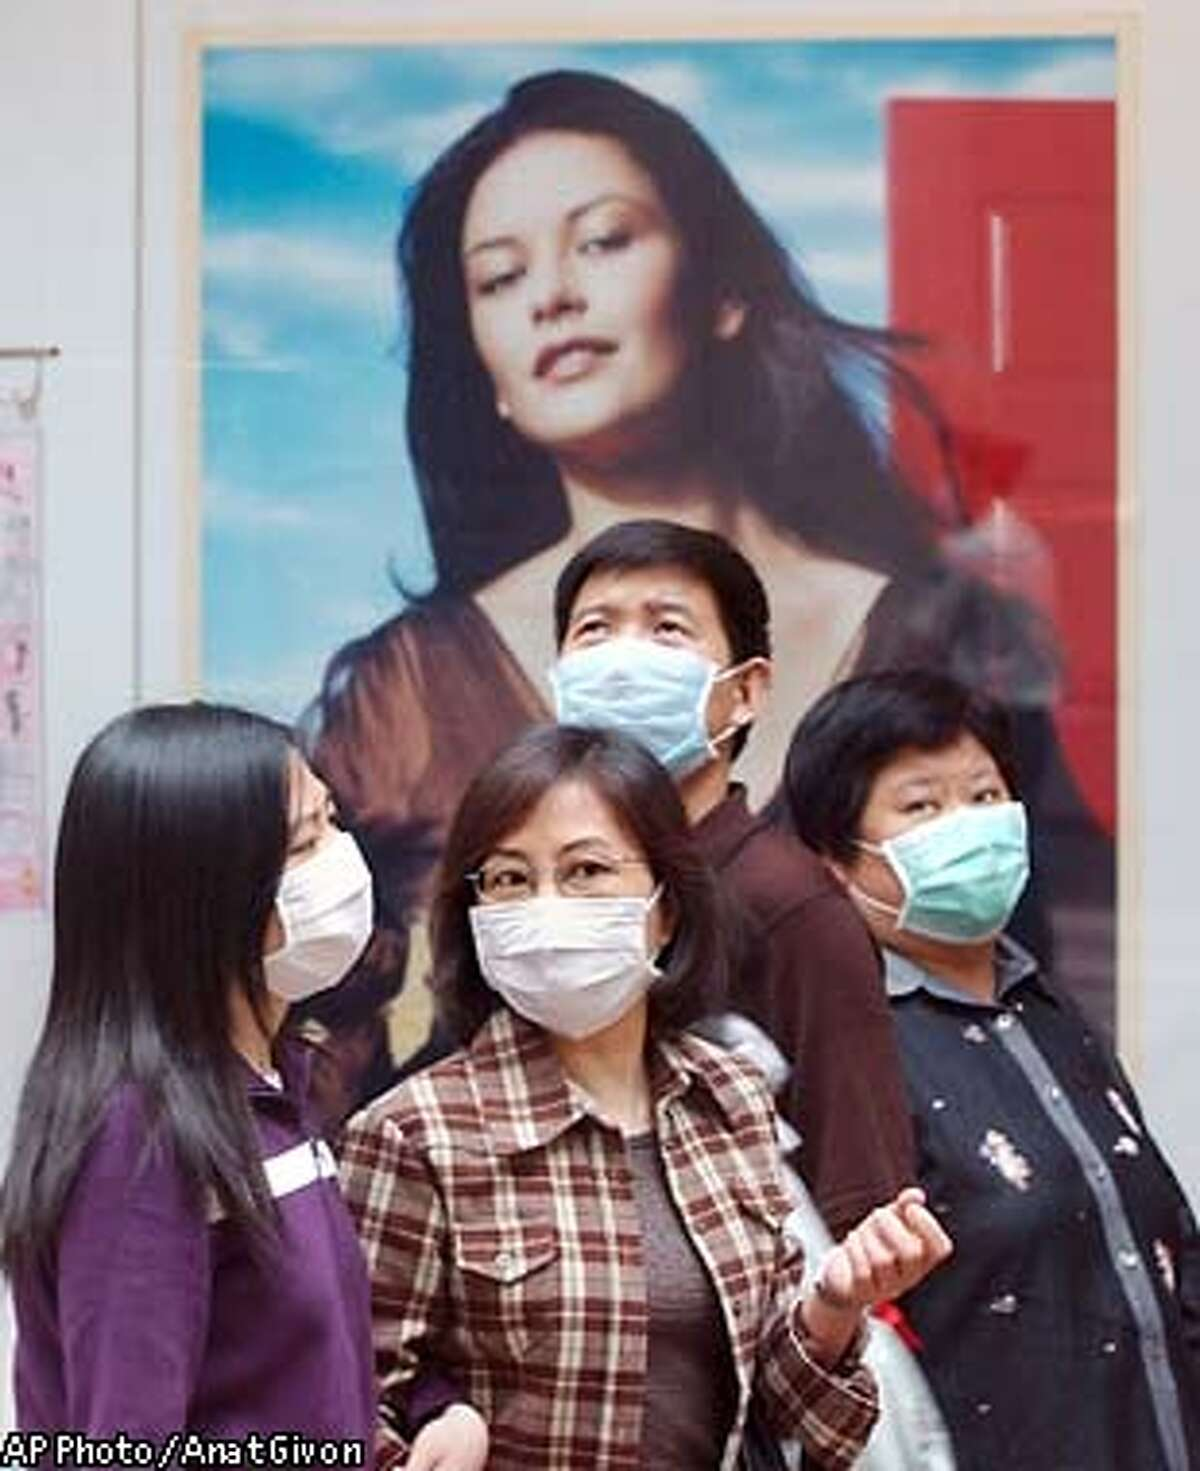 A group of people wearing surgical masks, to protect themselves from severe acute respiratoy syndrome, or SARS, stand in front of a cosmetics advertisment featuring oscar winning actress Catherine Zeta-Jones in a busy shopping district of Hong Kong, Saturday, April 5, 2003. Fears of the deadly flu-like disease are keeping many Hong Kong residents from travelling to China's neighboring Guangdong province, as tens of thousands do every year, for Ching Ming festival, a time when Chinese traditionally pay respect to the dead by cleaning their graves and burning incense. (AP Photo / Anat Givon)